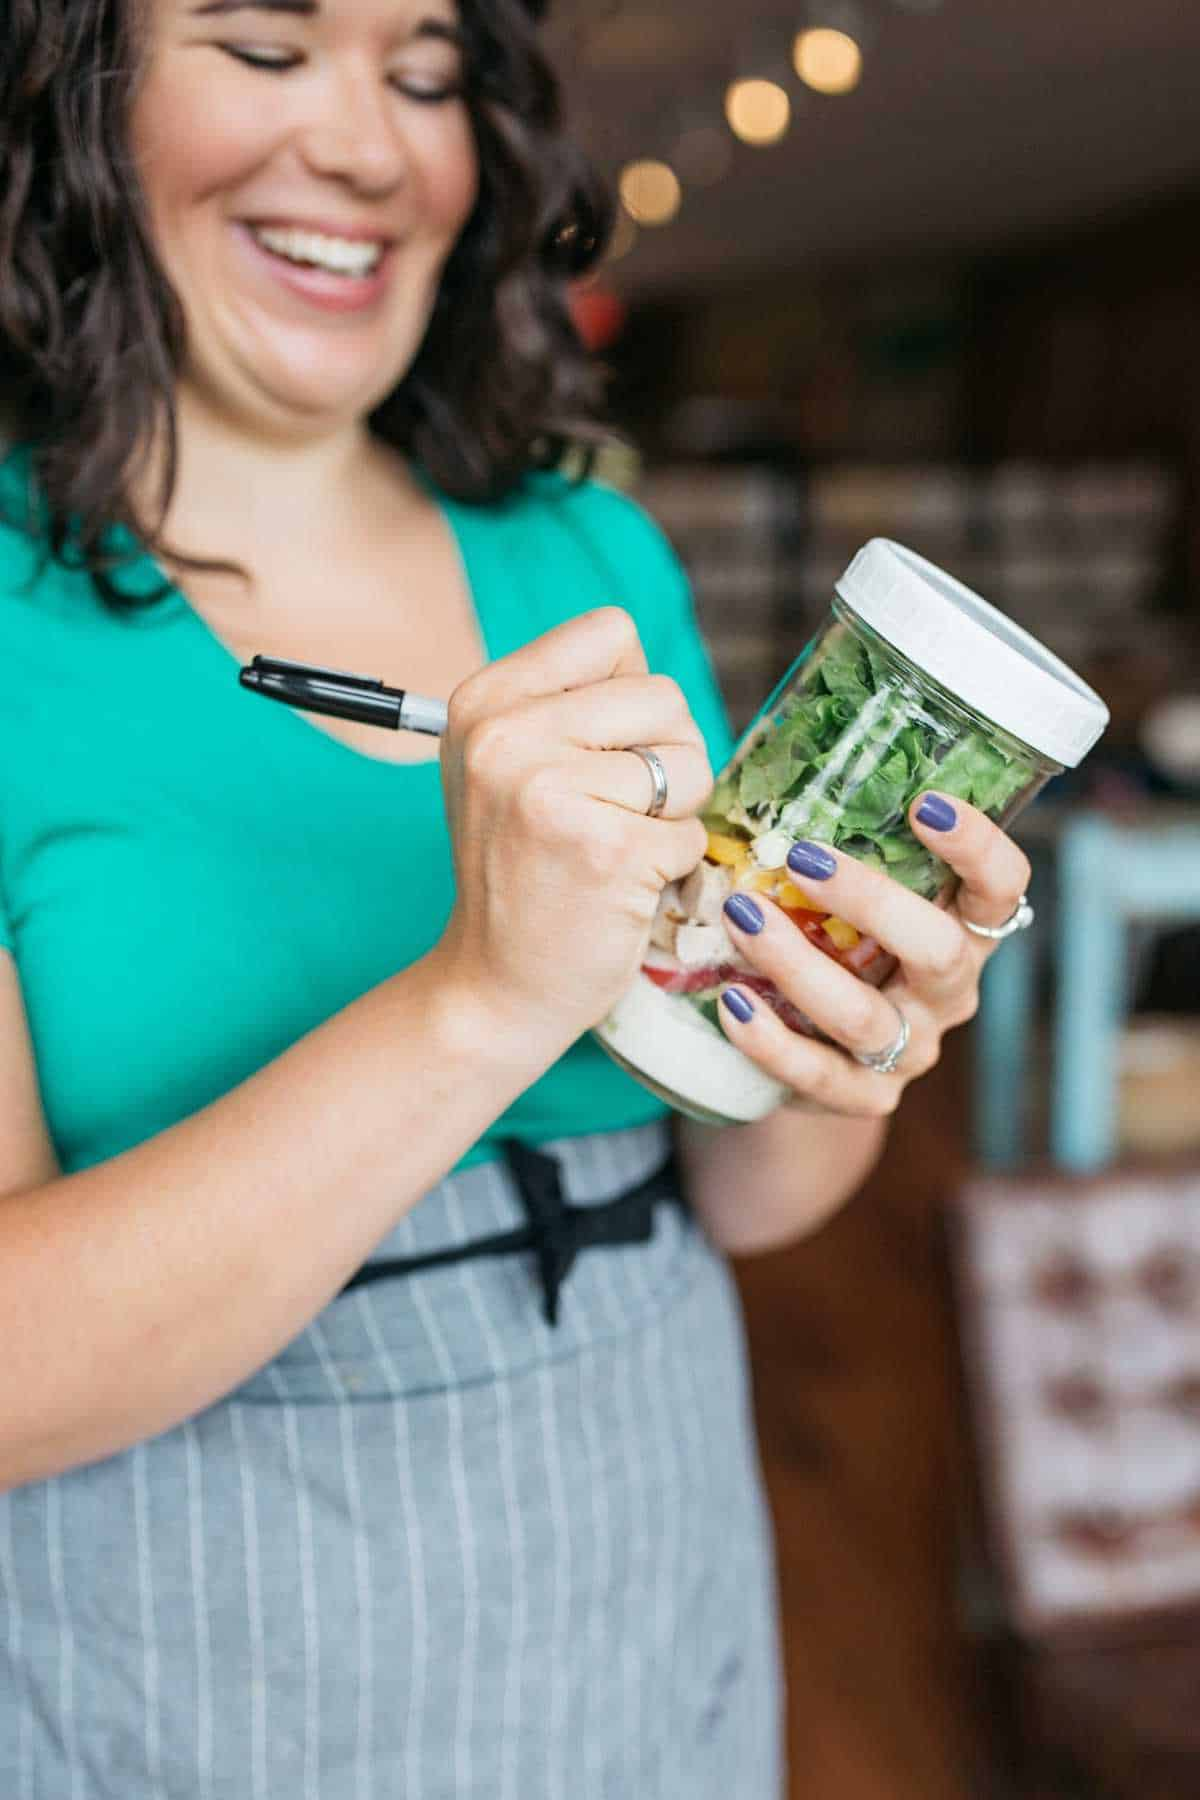 Smiling woman in teal shirt and gray apron uses a permanent marker to write on a jar filled with salad ingredients.